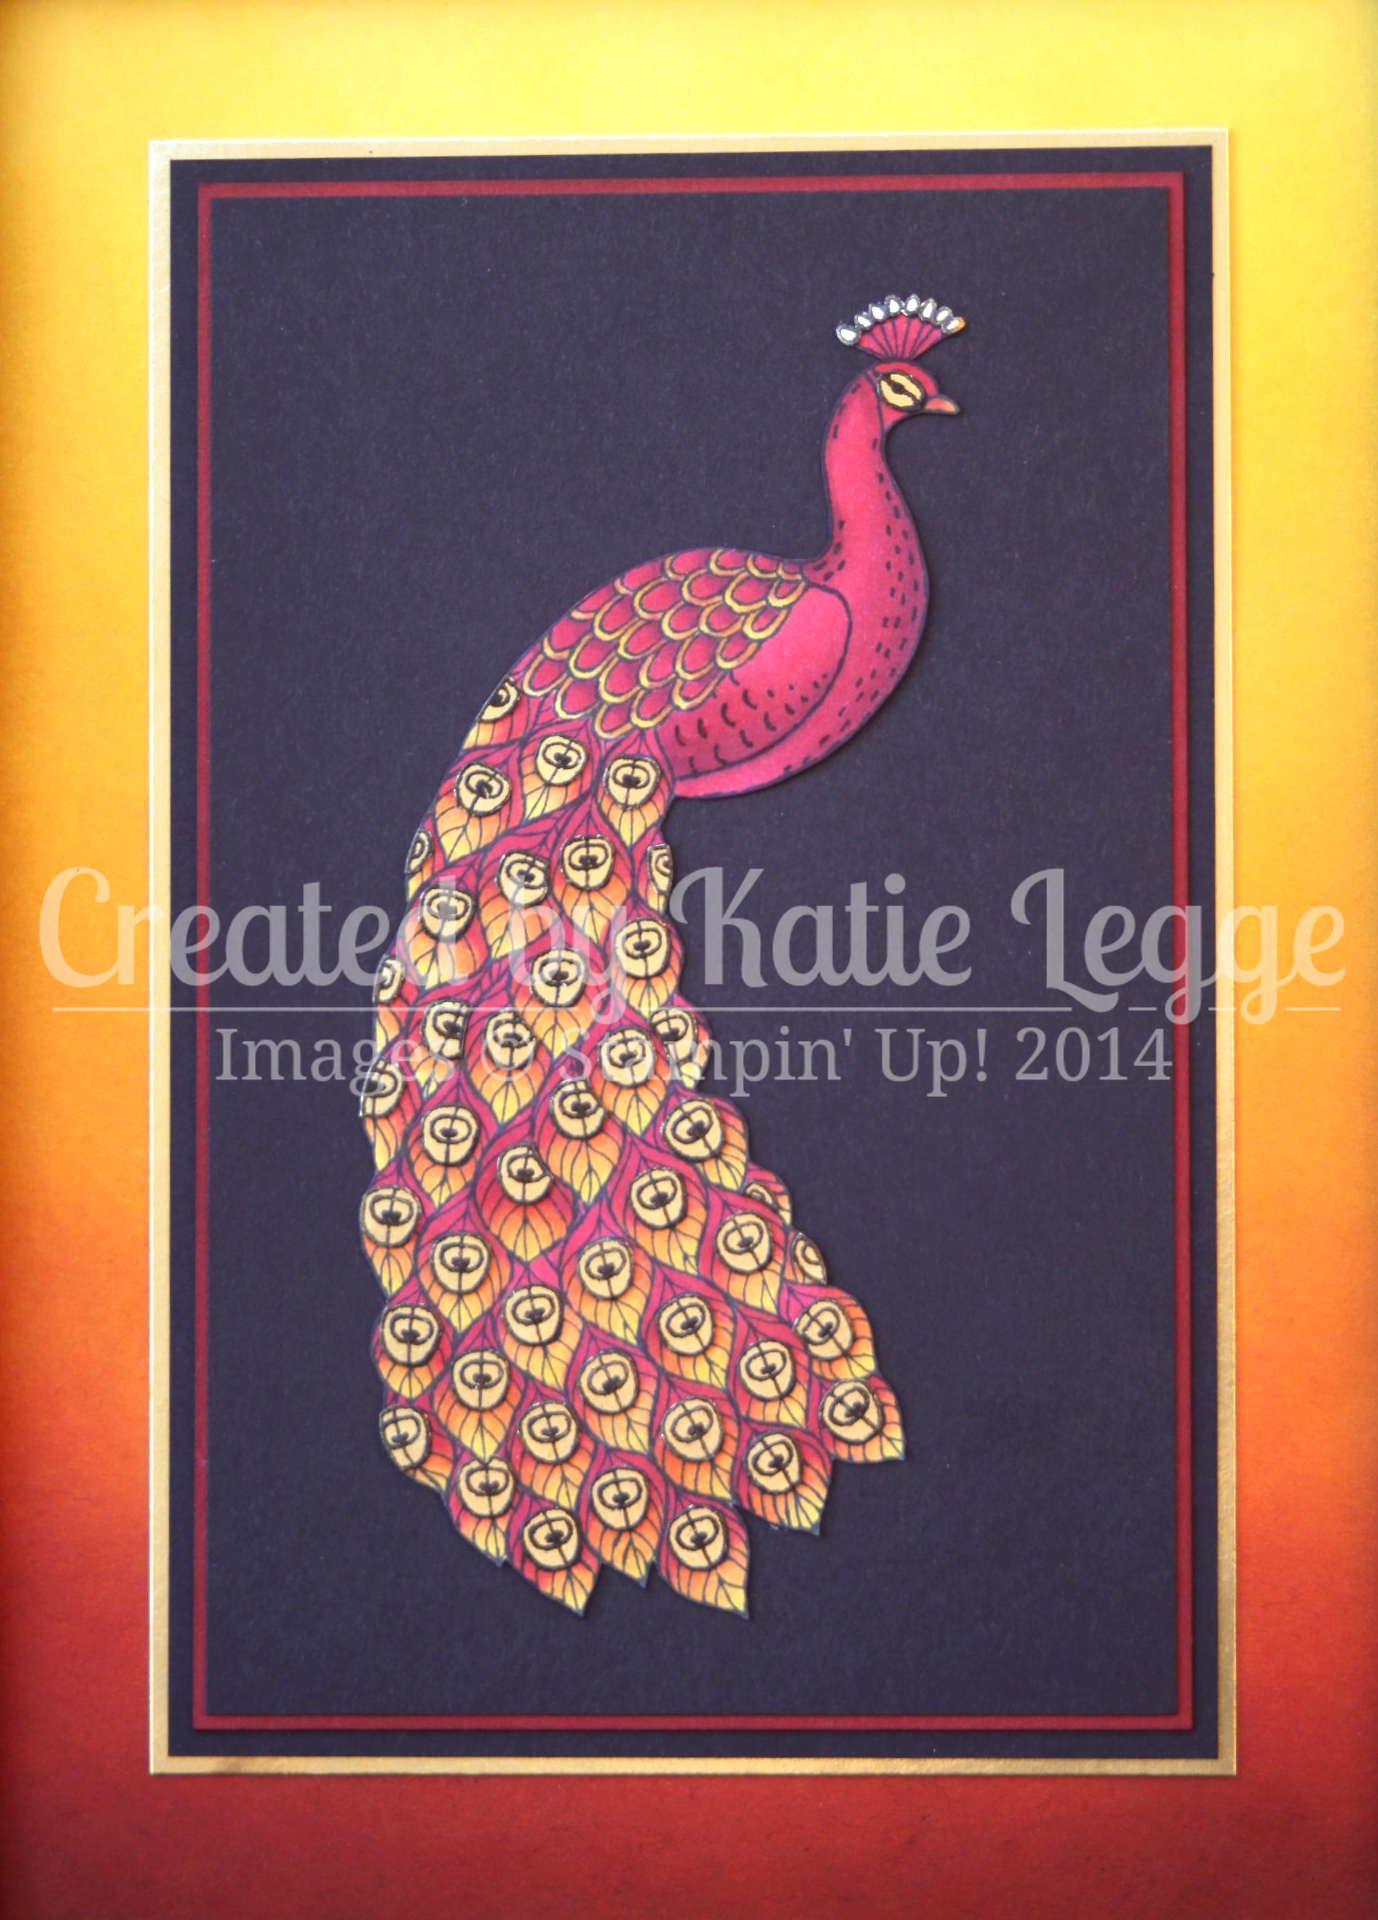 katie legge stampin up perfect peacock phoenix frame coloured with blendabilities close up wwwrachelleggestampinup - Home Decor Phoenix